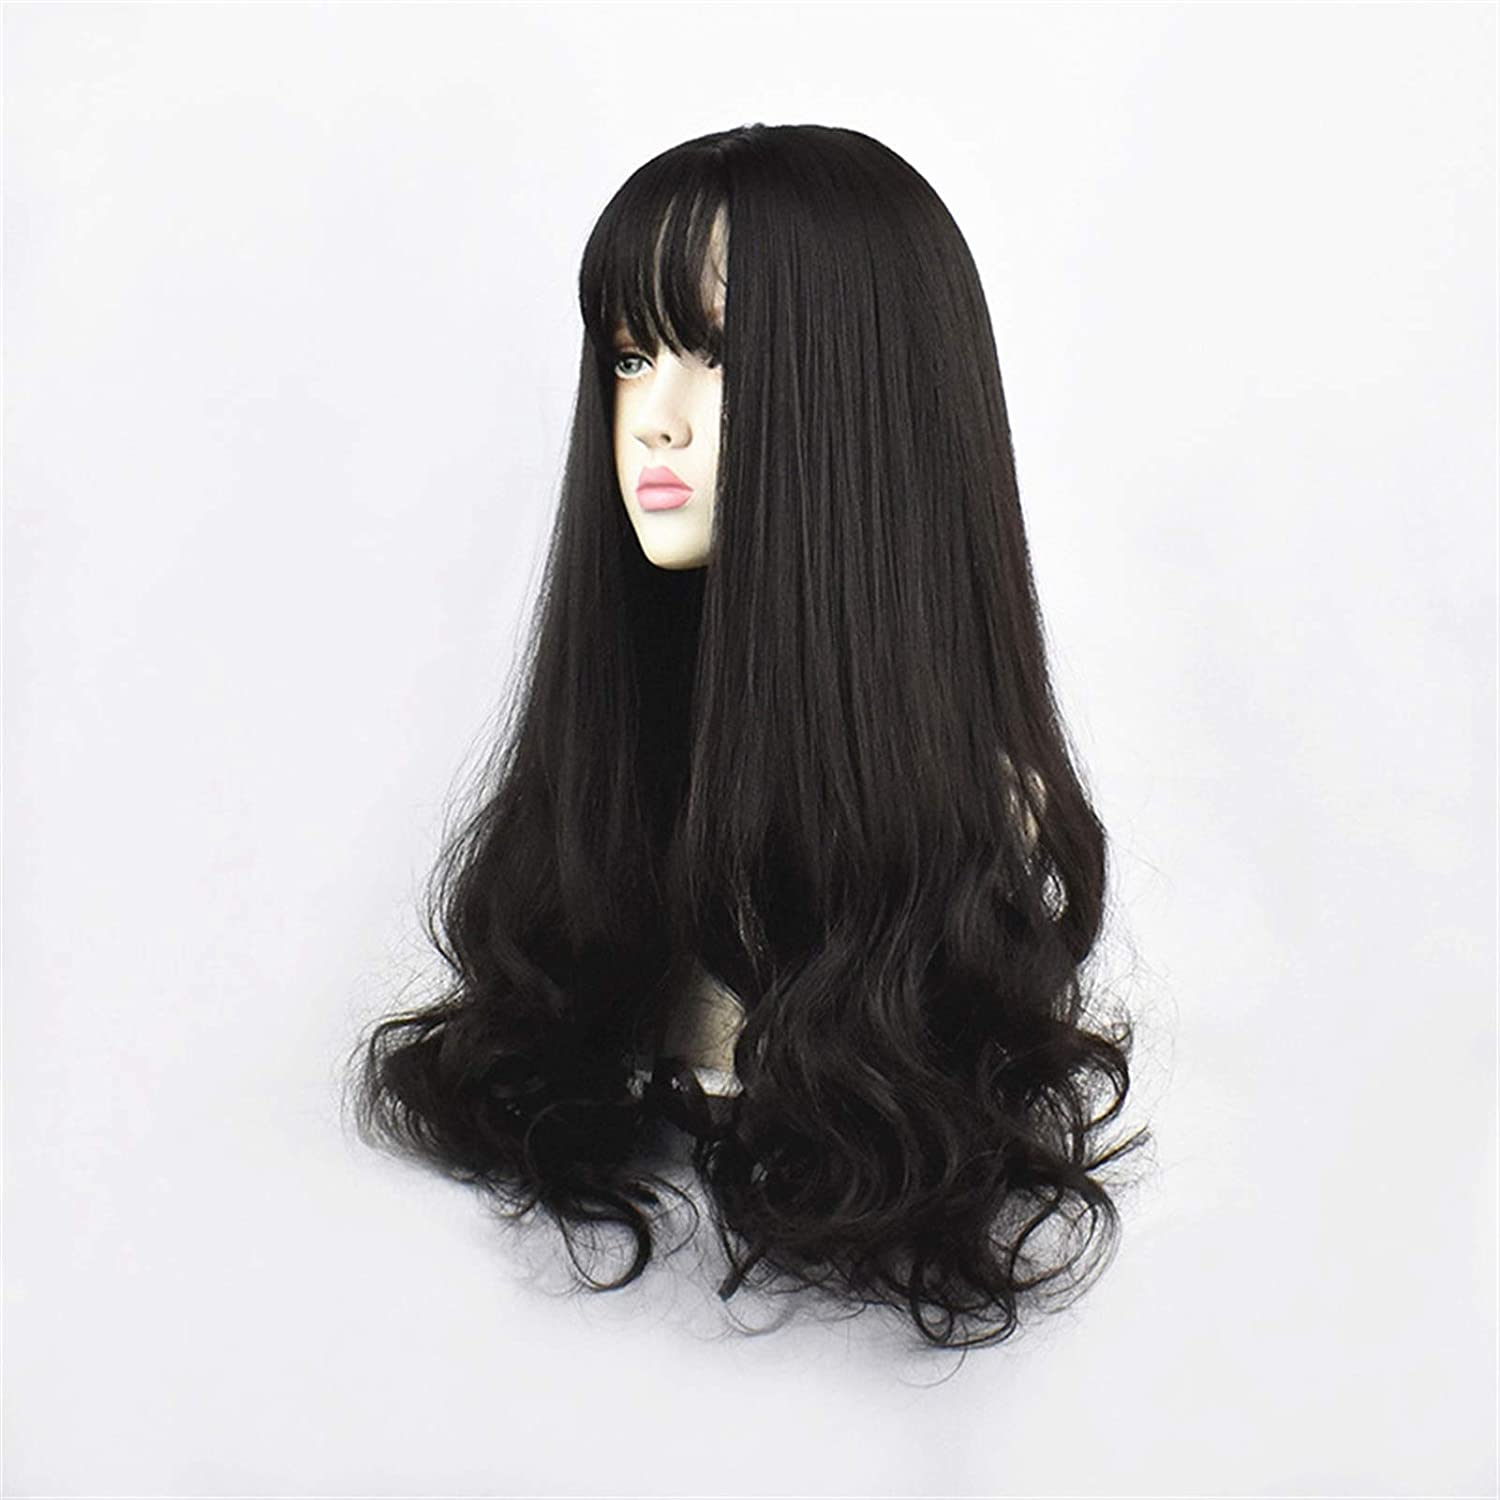 zxb-shop Synthetic Wig 24inch Under blast sales Green Black B Curly Be super welcome Hair